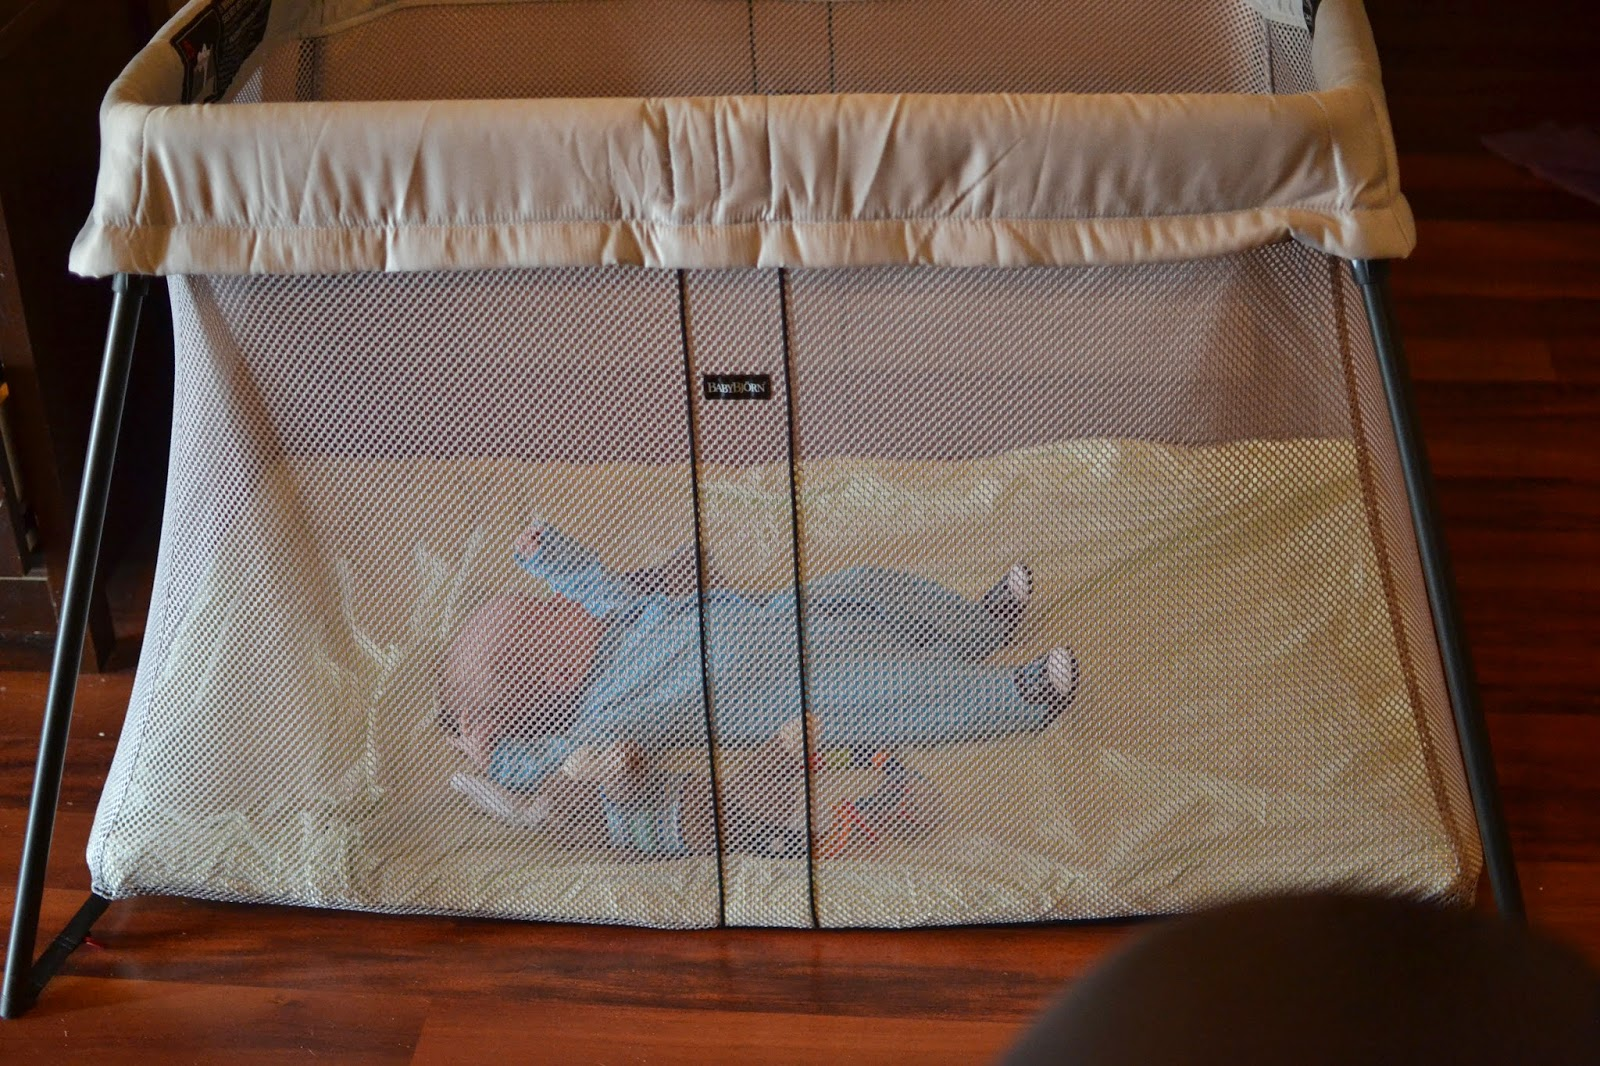 BABYBJÖRN #TravelLightCrib Review & #Giveaway